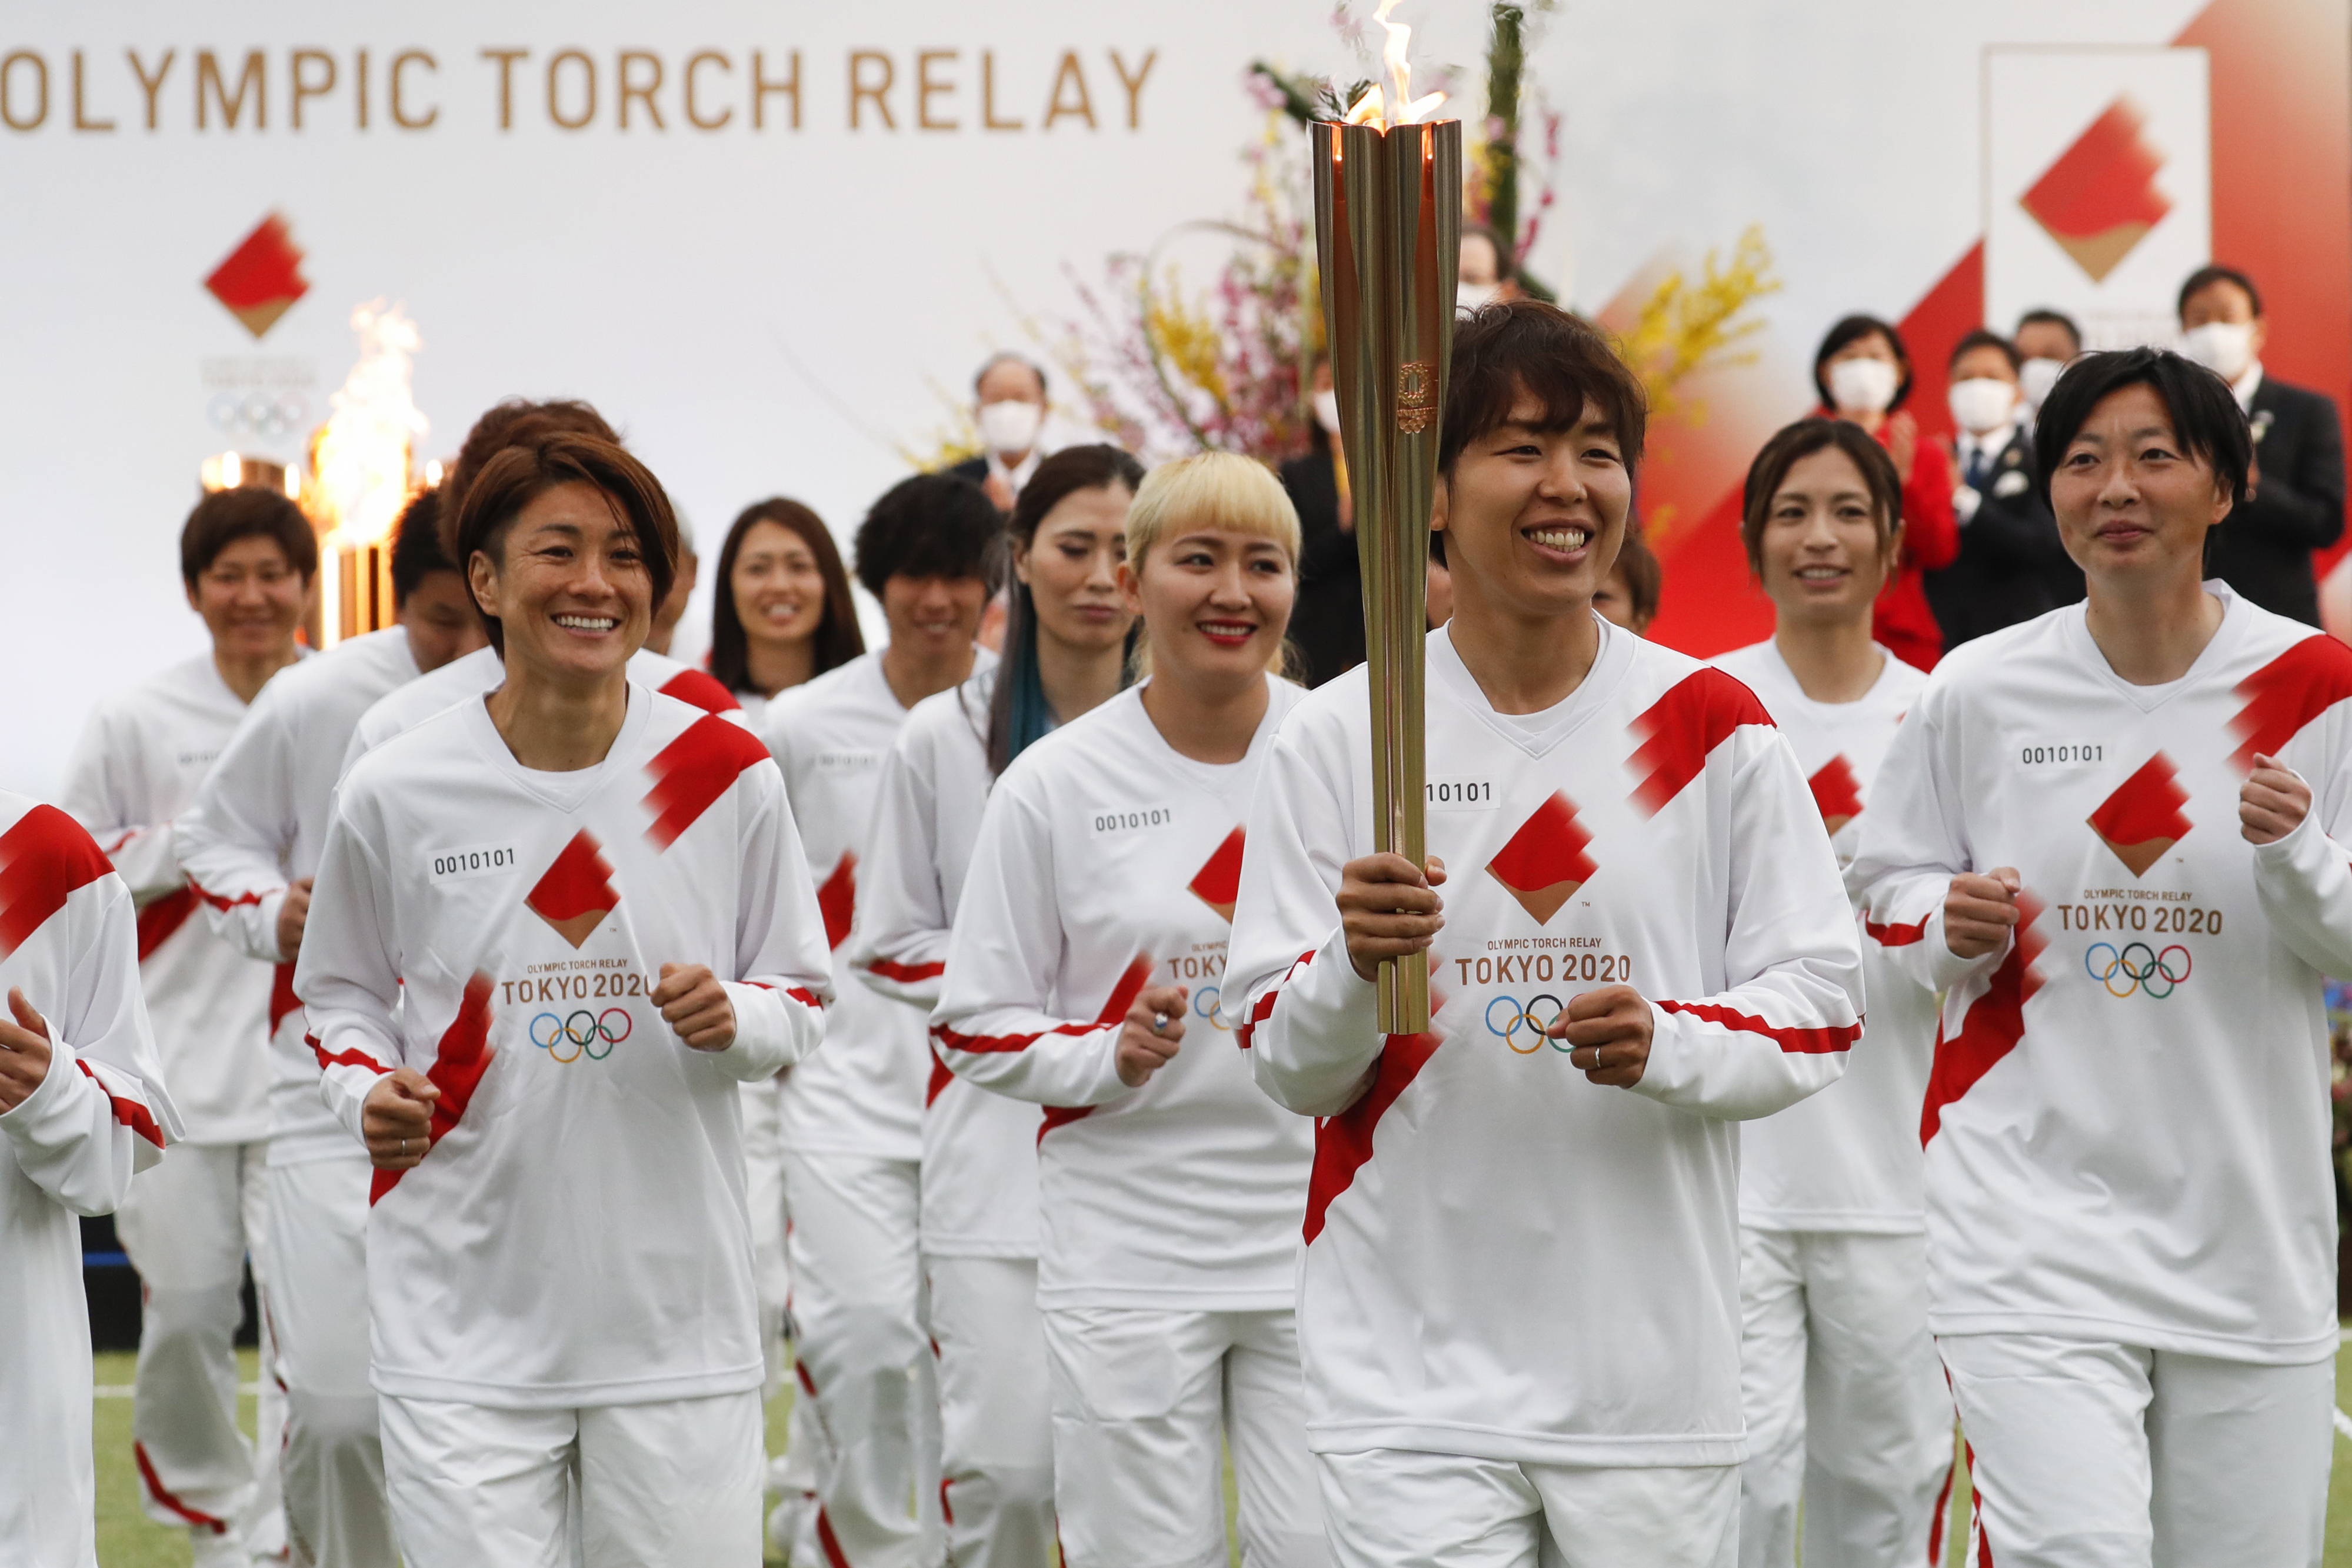 The women's national soccer team of Japan begin the the Tokyo 2020 Olympics Torch Relay in Naraha, Fukushima prefecture, northeastern Japan, on Thursday, March 25, 2021.